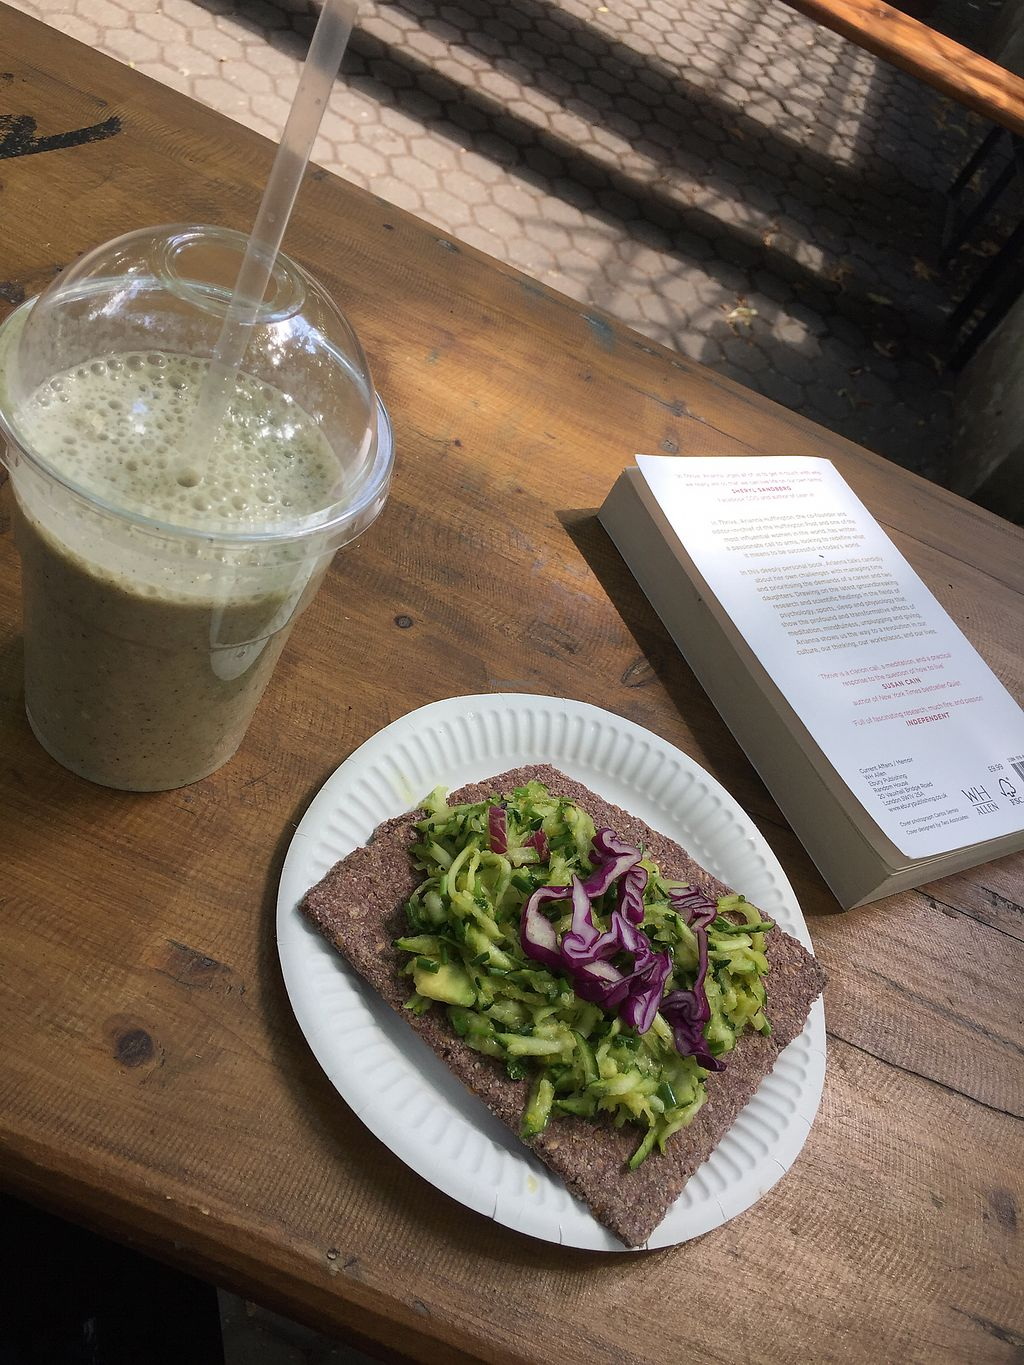 """Photo of bistRAW & Tea  by <a href=""""/members/profile/HannaSle"""">HannaSle</a> <br/>Mango Smoothie & Avokado pizza <br/> July 23, 2017  - <a href='/contact/abuse/image/61888/283655'>Report</a>"""